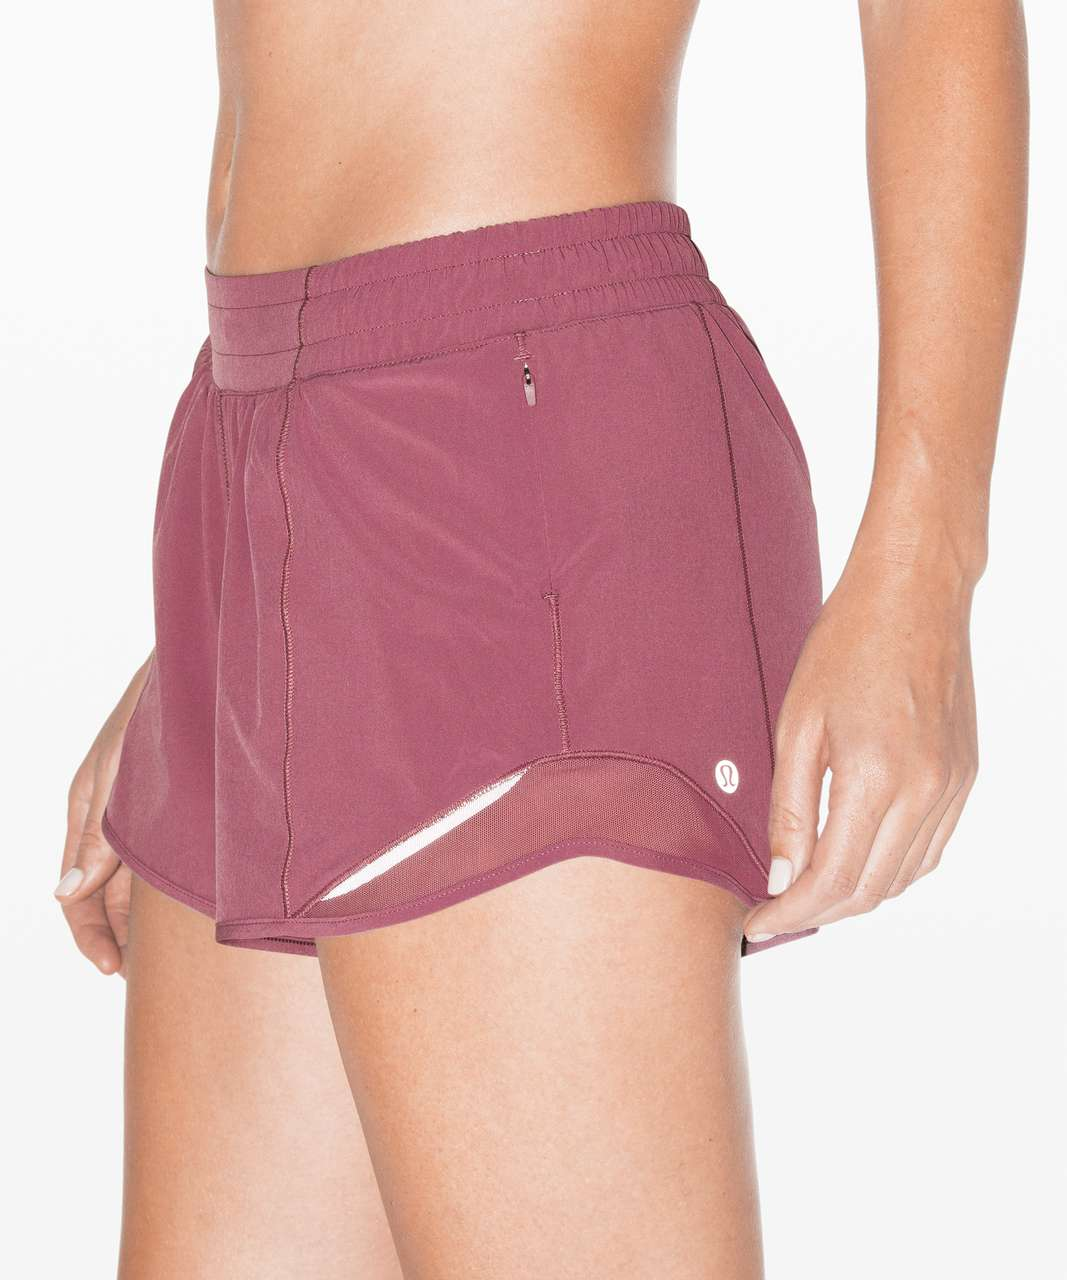 "Lululemon Hotty Hot Short II *Long 4"" - Plumful"